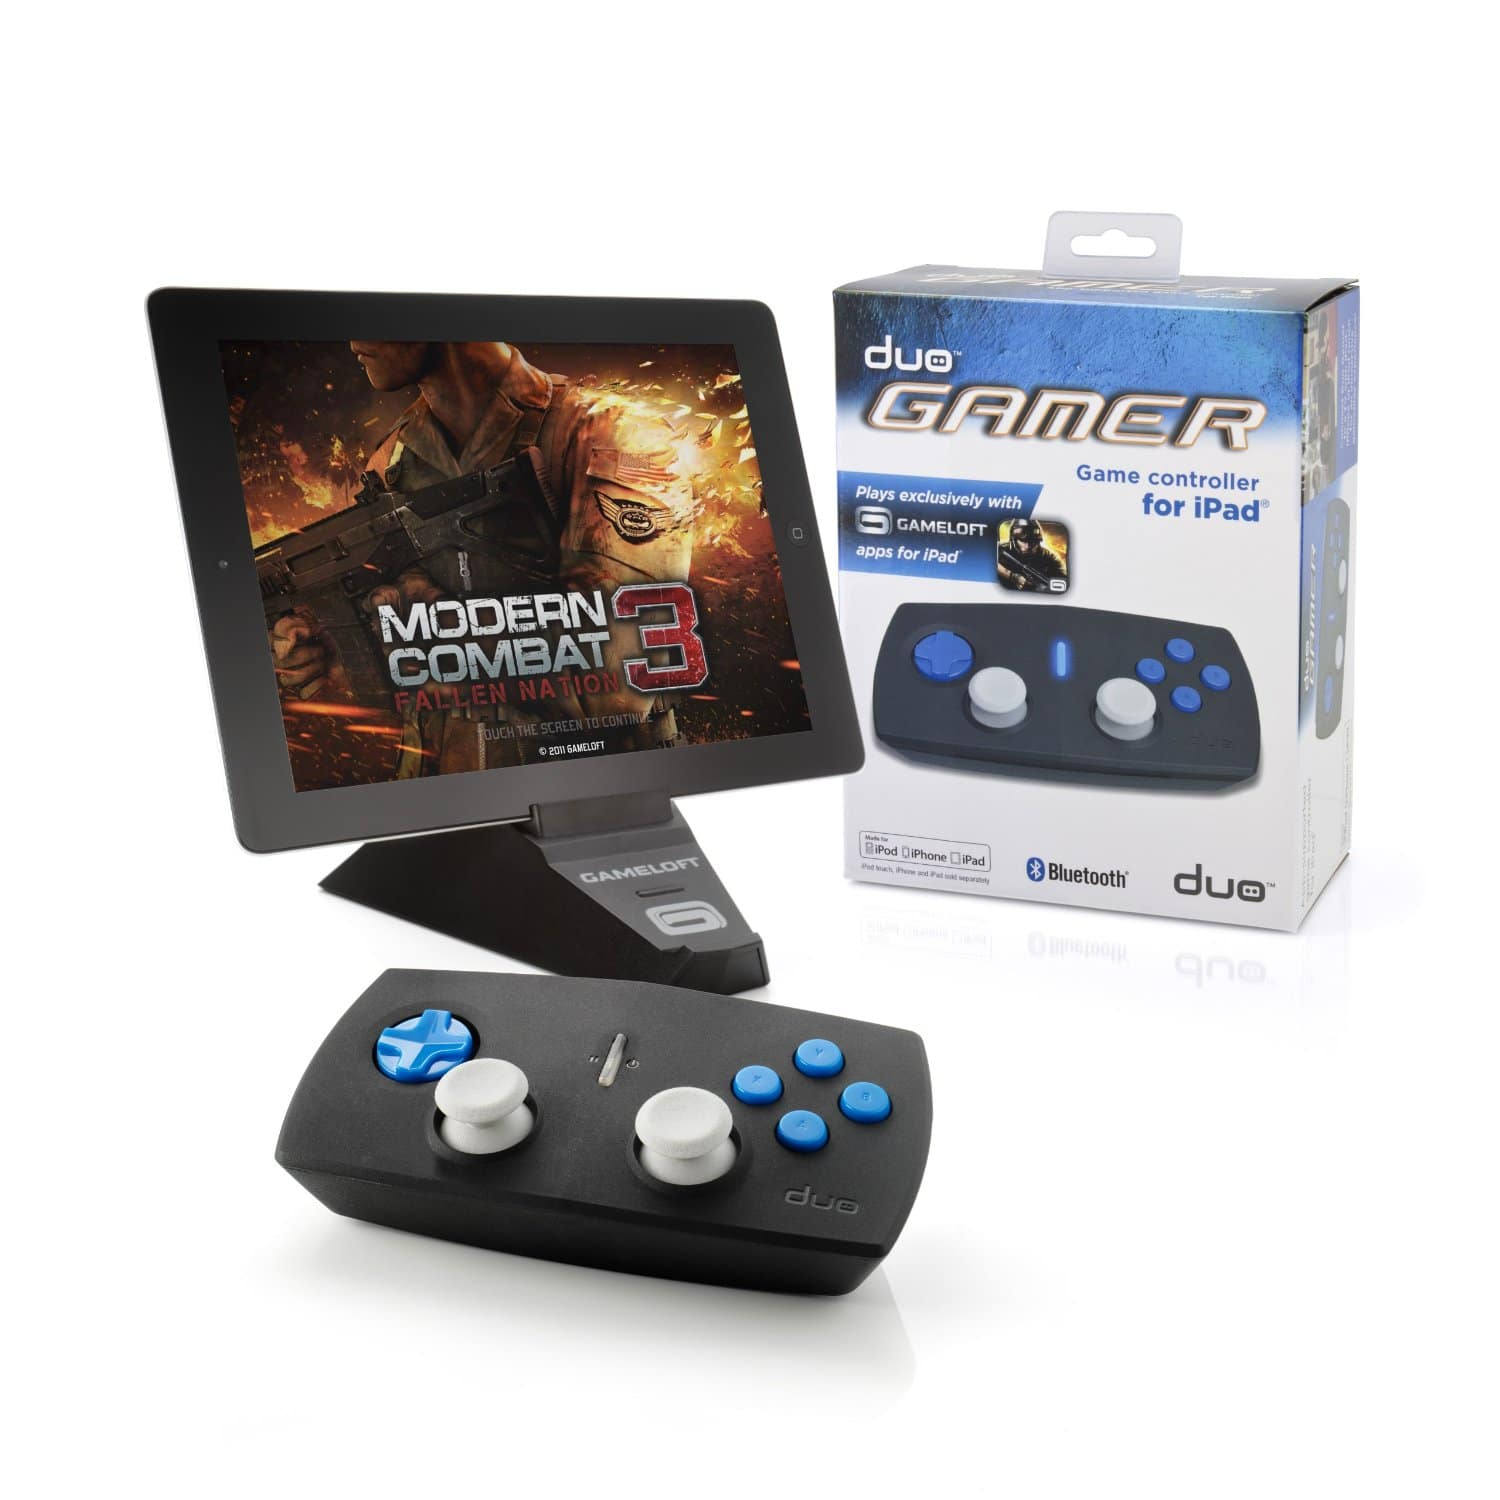 Duo Gamer iPad Accessory Turns Your iPad Into A Console